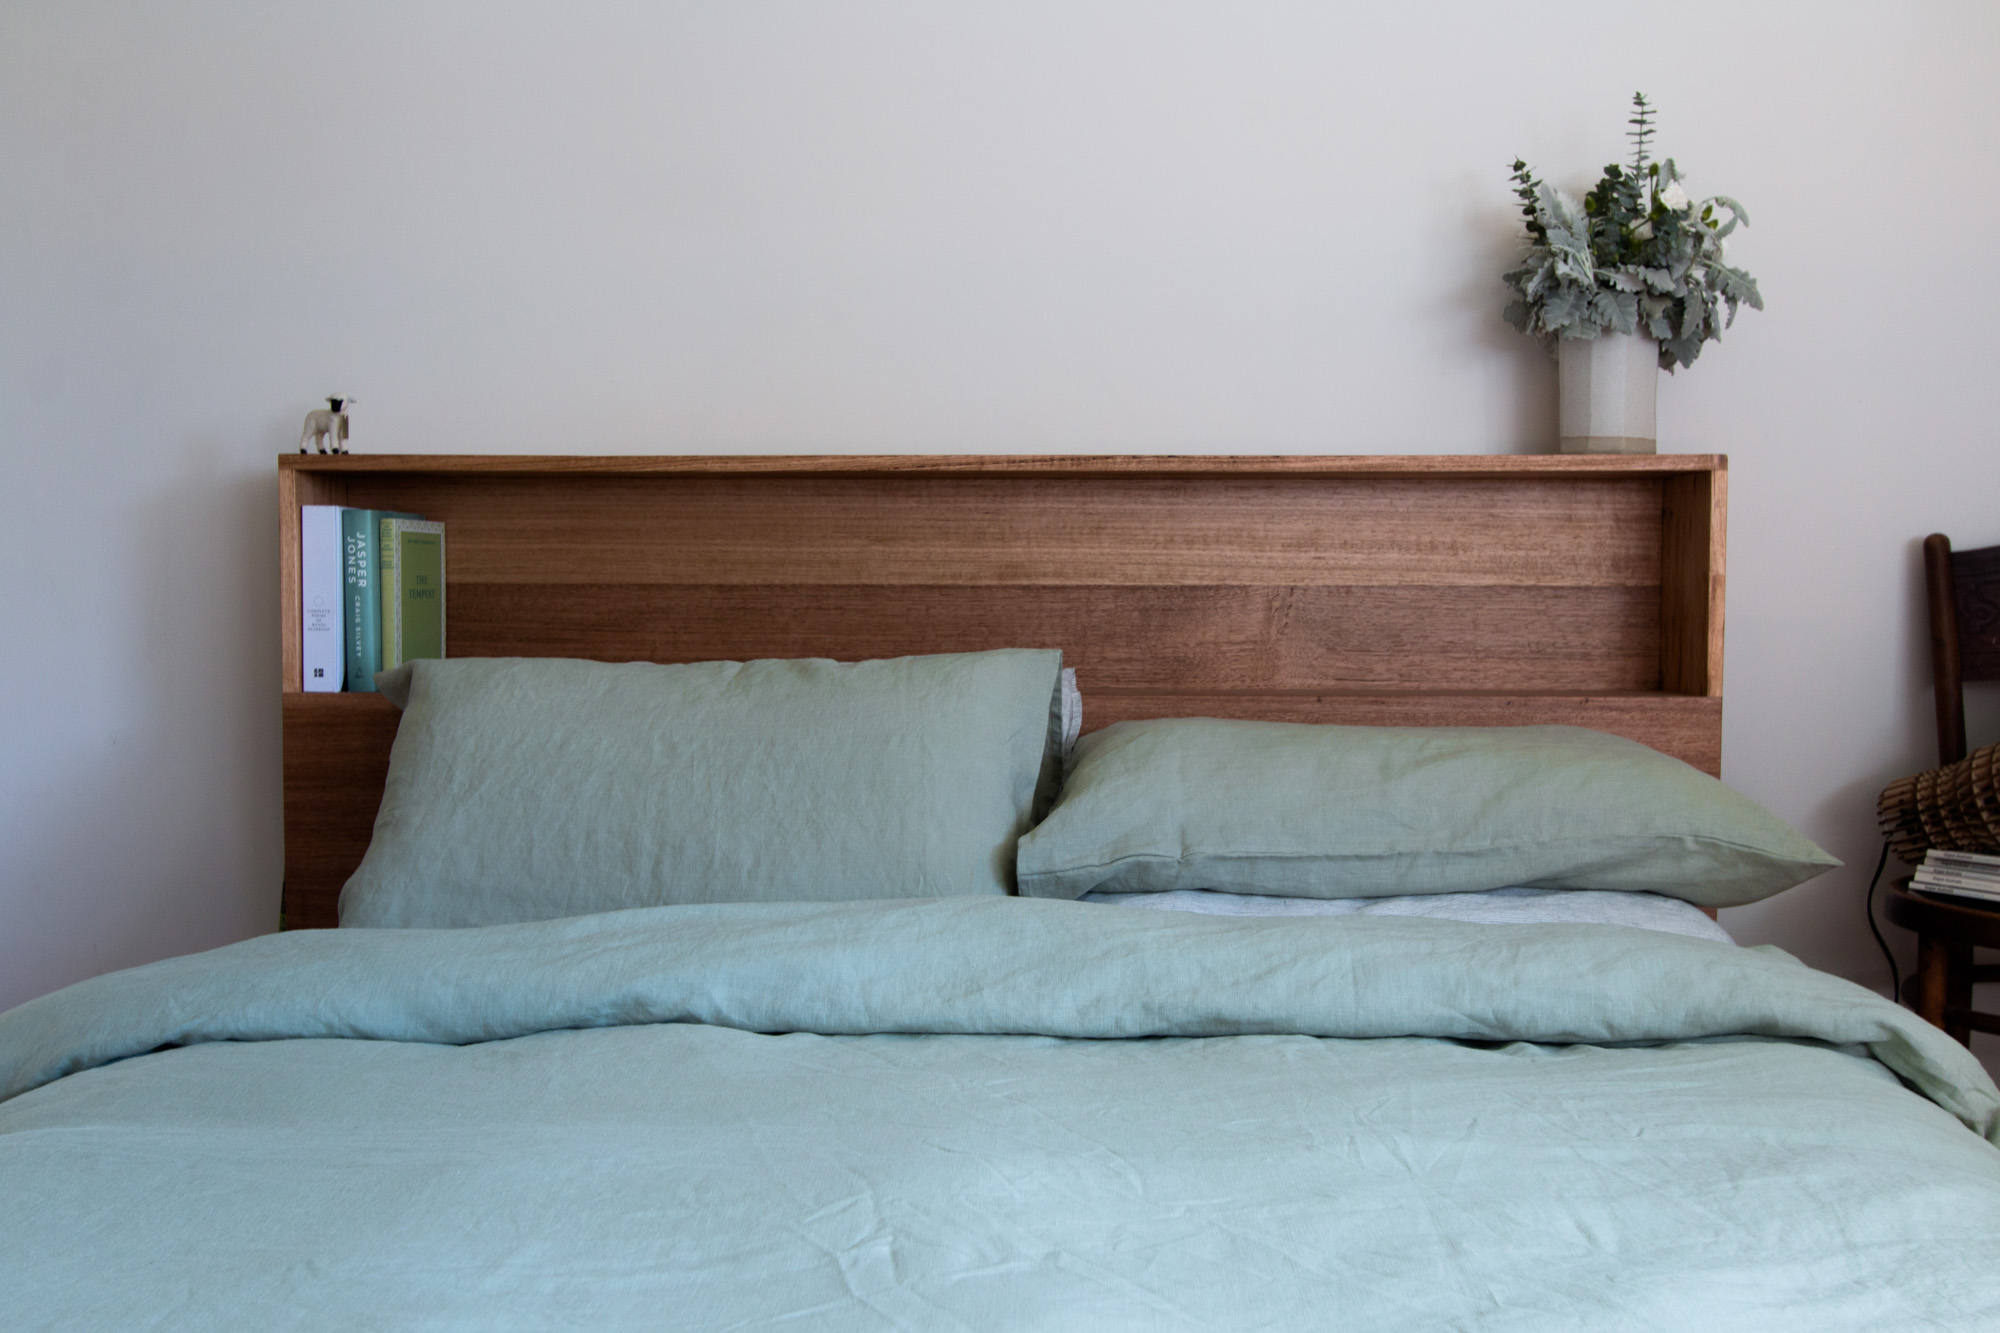 Al and Imo Handmade - Bookshelf Bedhead Platform Bed - Custom made from recycled timber - Australia - Melbourne - Surf Coast-5.jpg